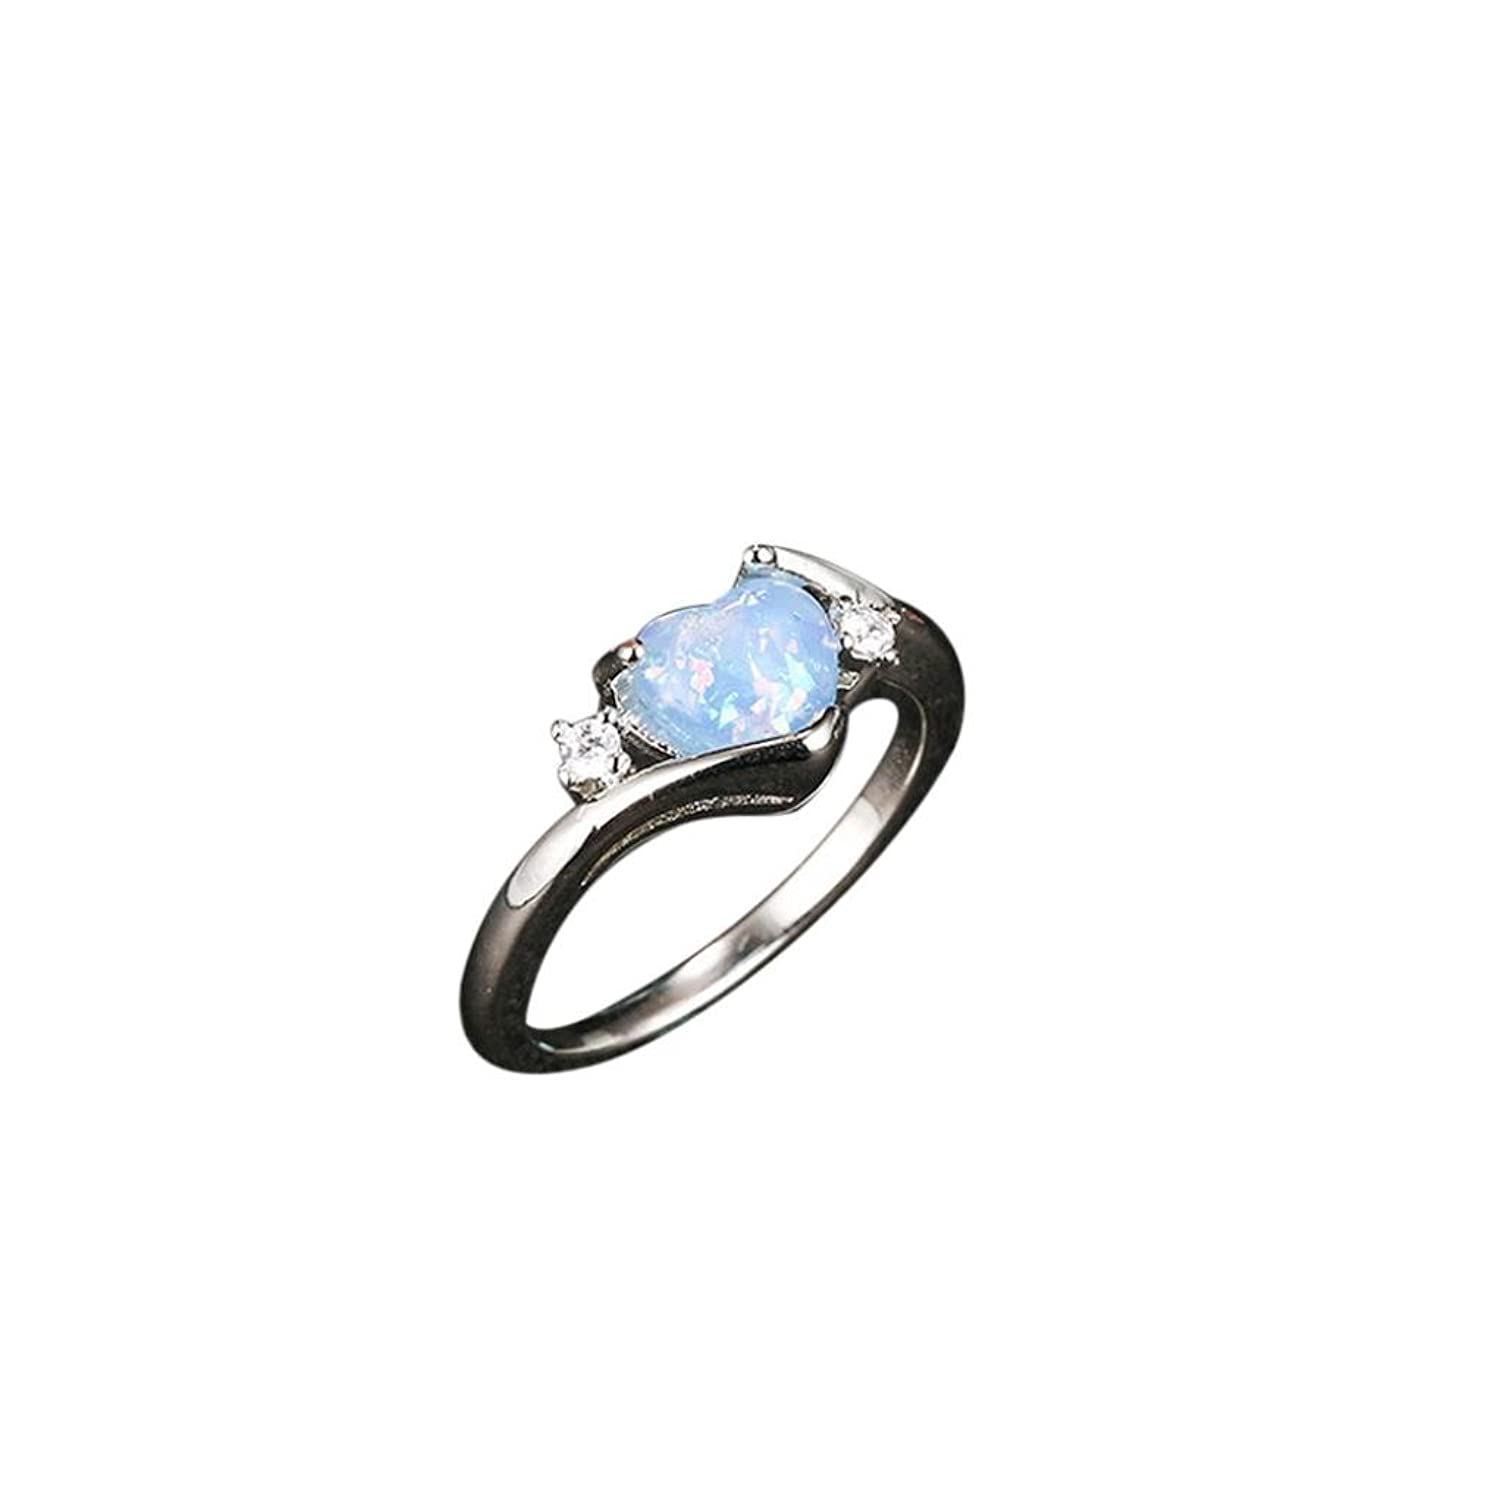 Nmch Clearance Rings Love Mum Diamond Ring Jewelry Best Gift For